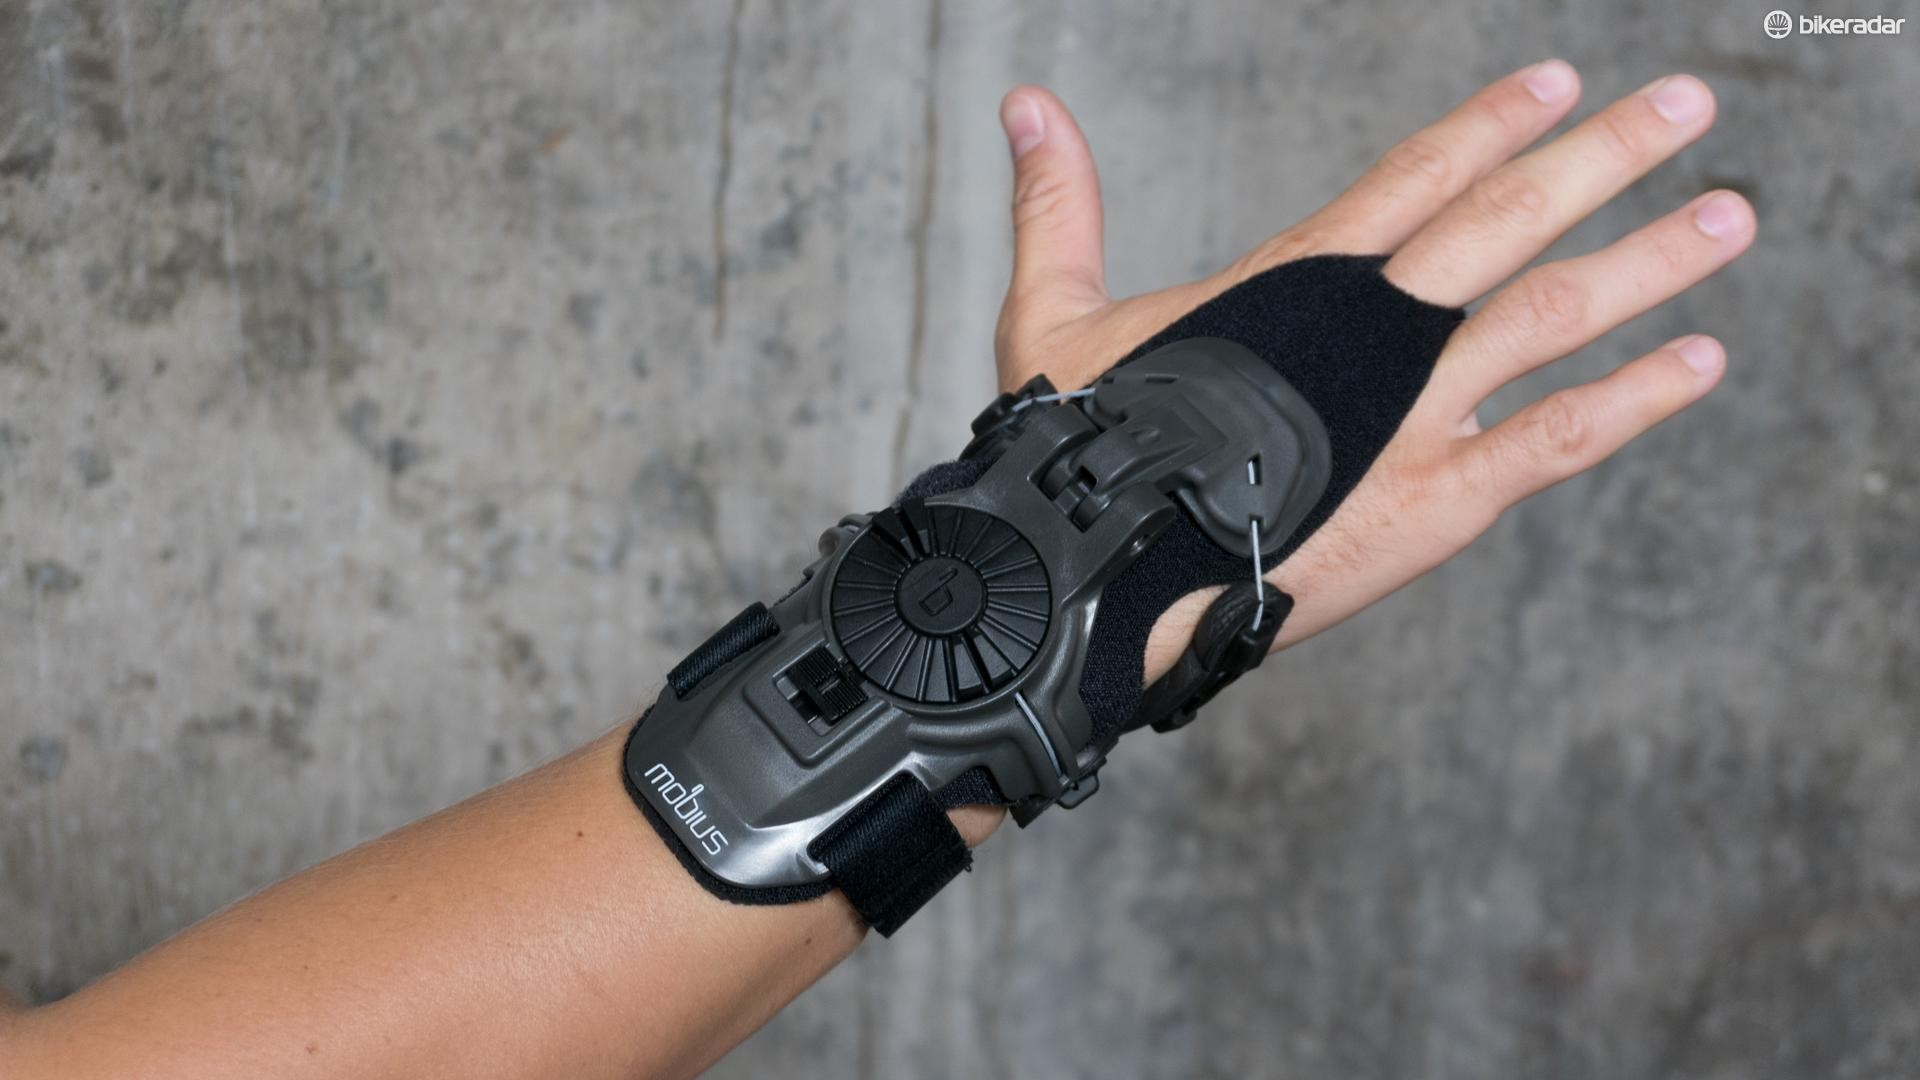 Not quite a bionic arm